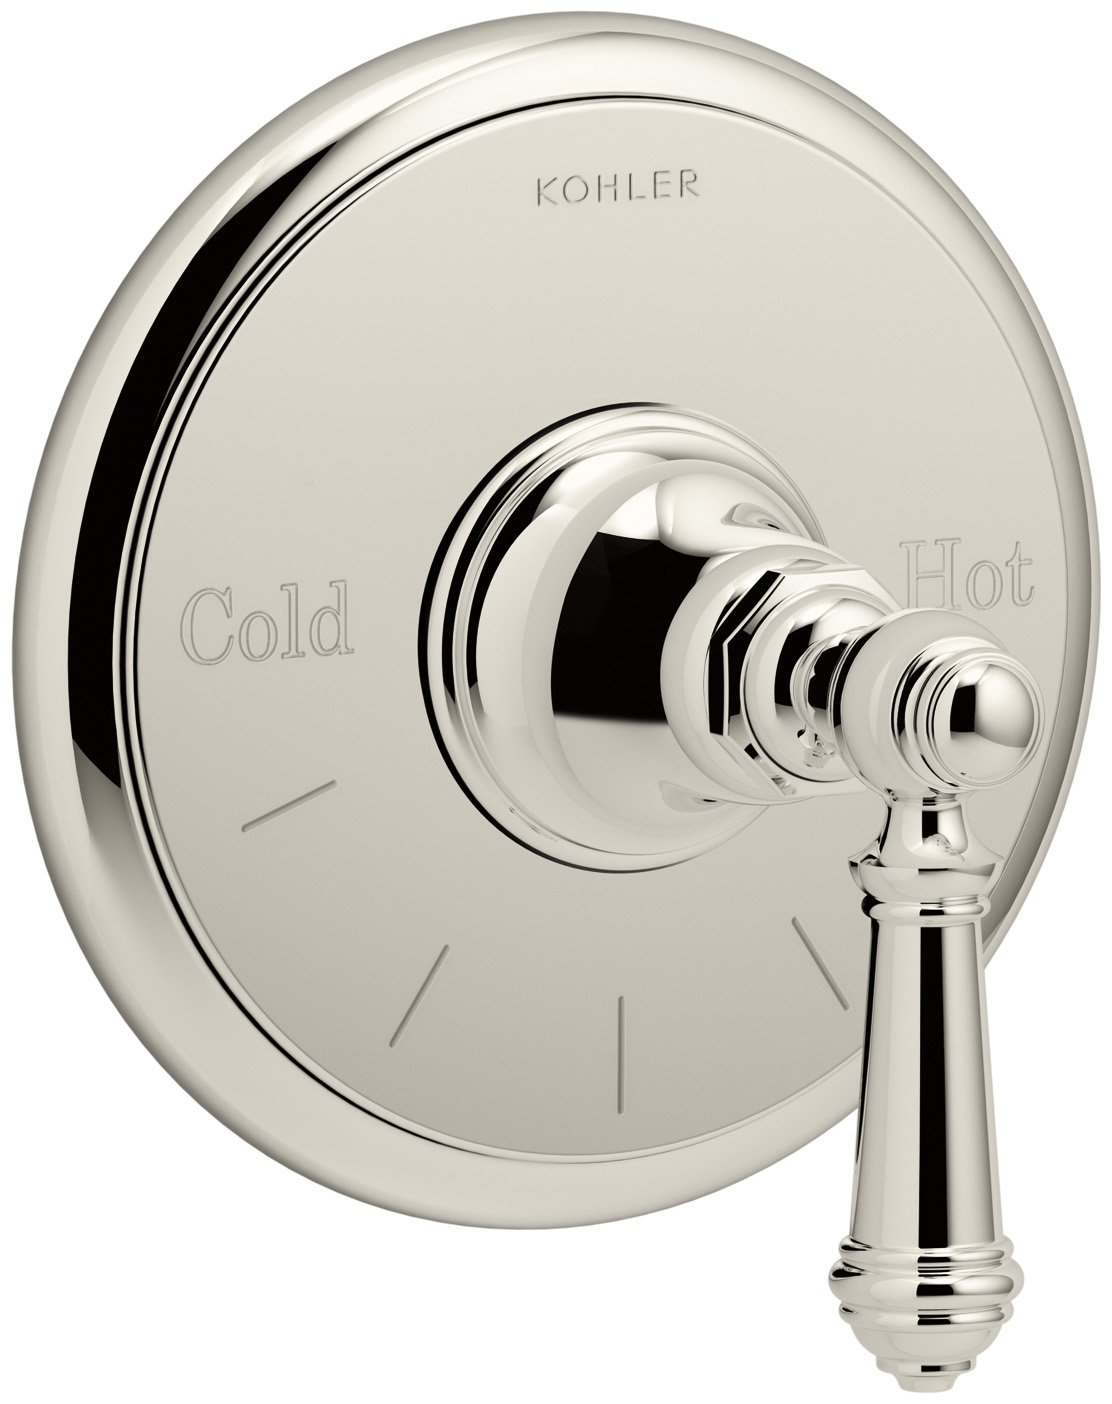 50%OFF KOHLER T72769-4-SN Artifacts Thermostatic valve trim with lever handle, Less Valve, Vibrant Polished Nickel